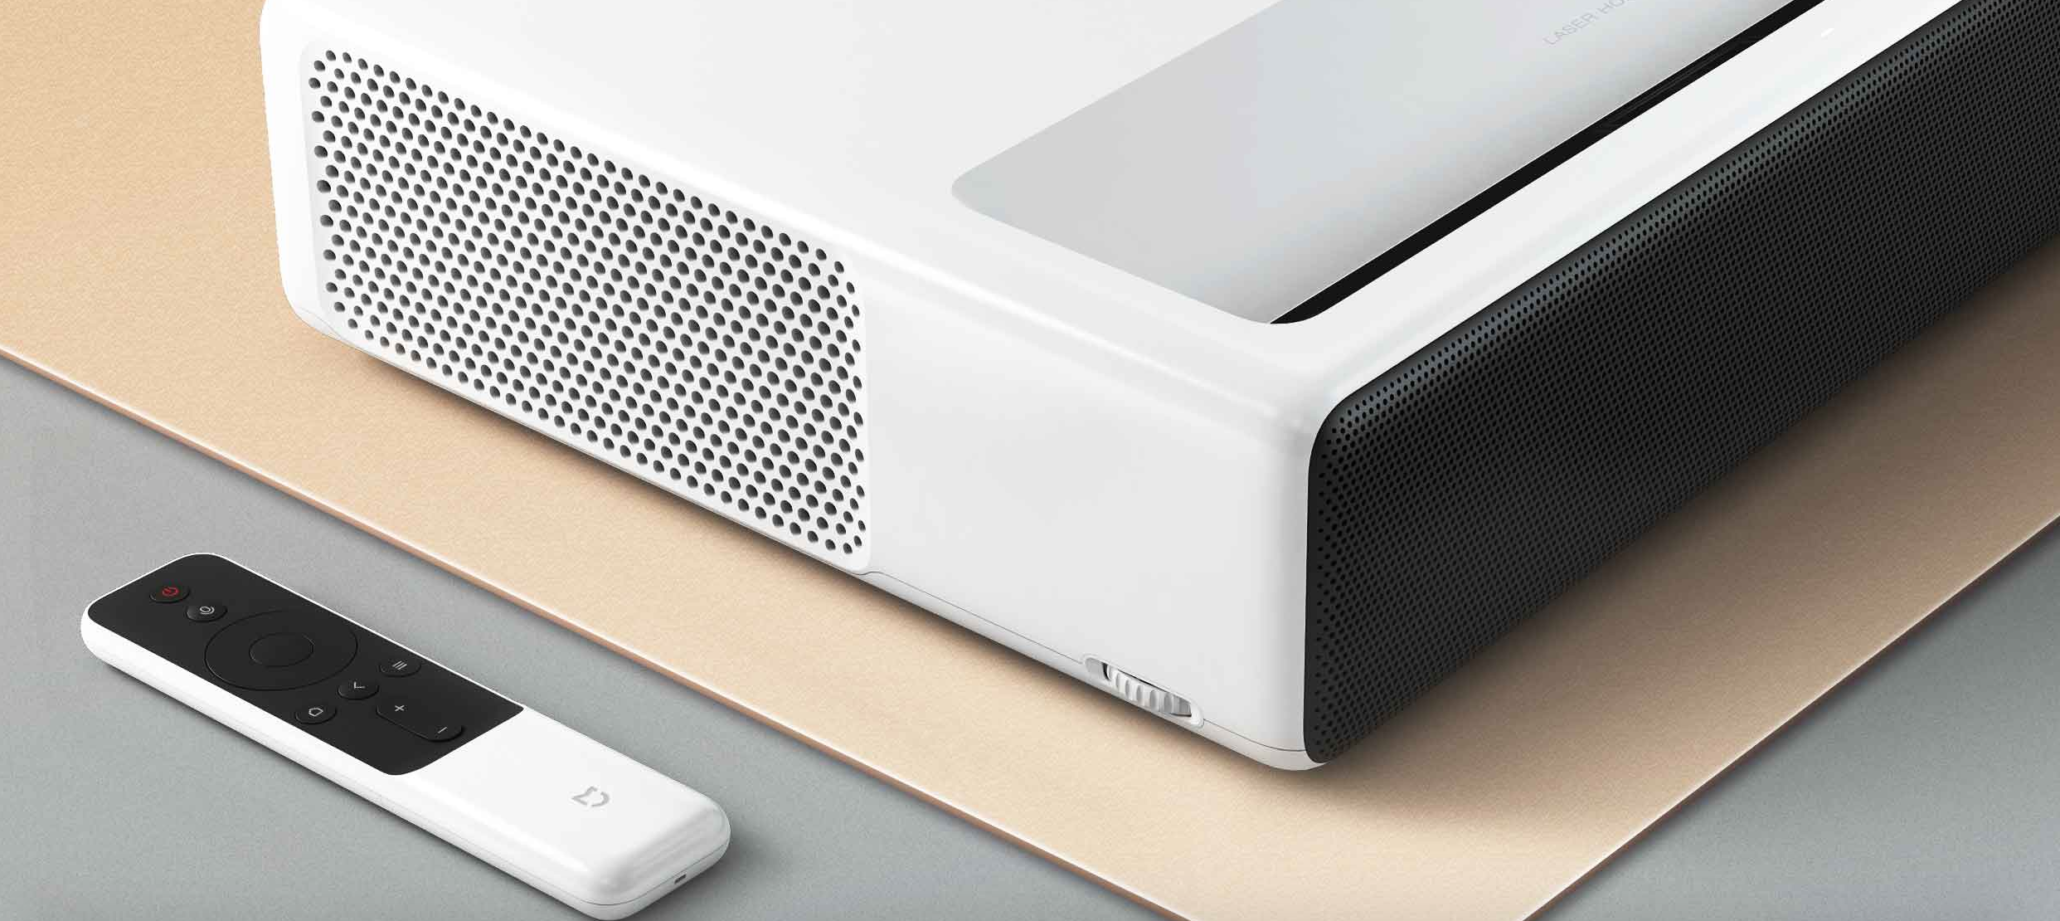 Last Chance to Get Ultra-Short Throw Laser Projector at